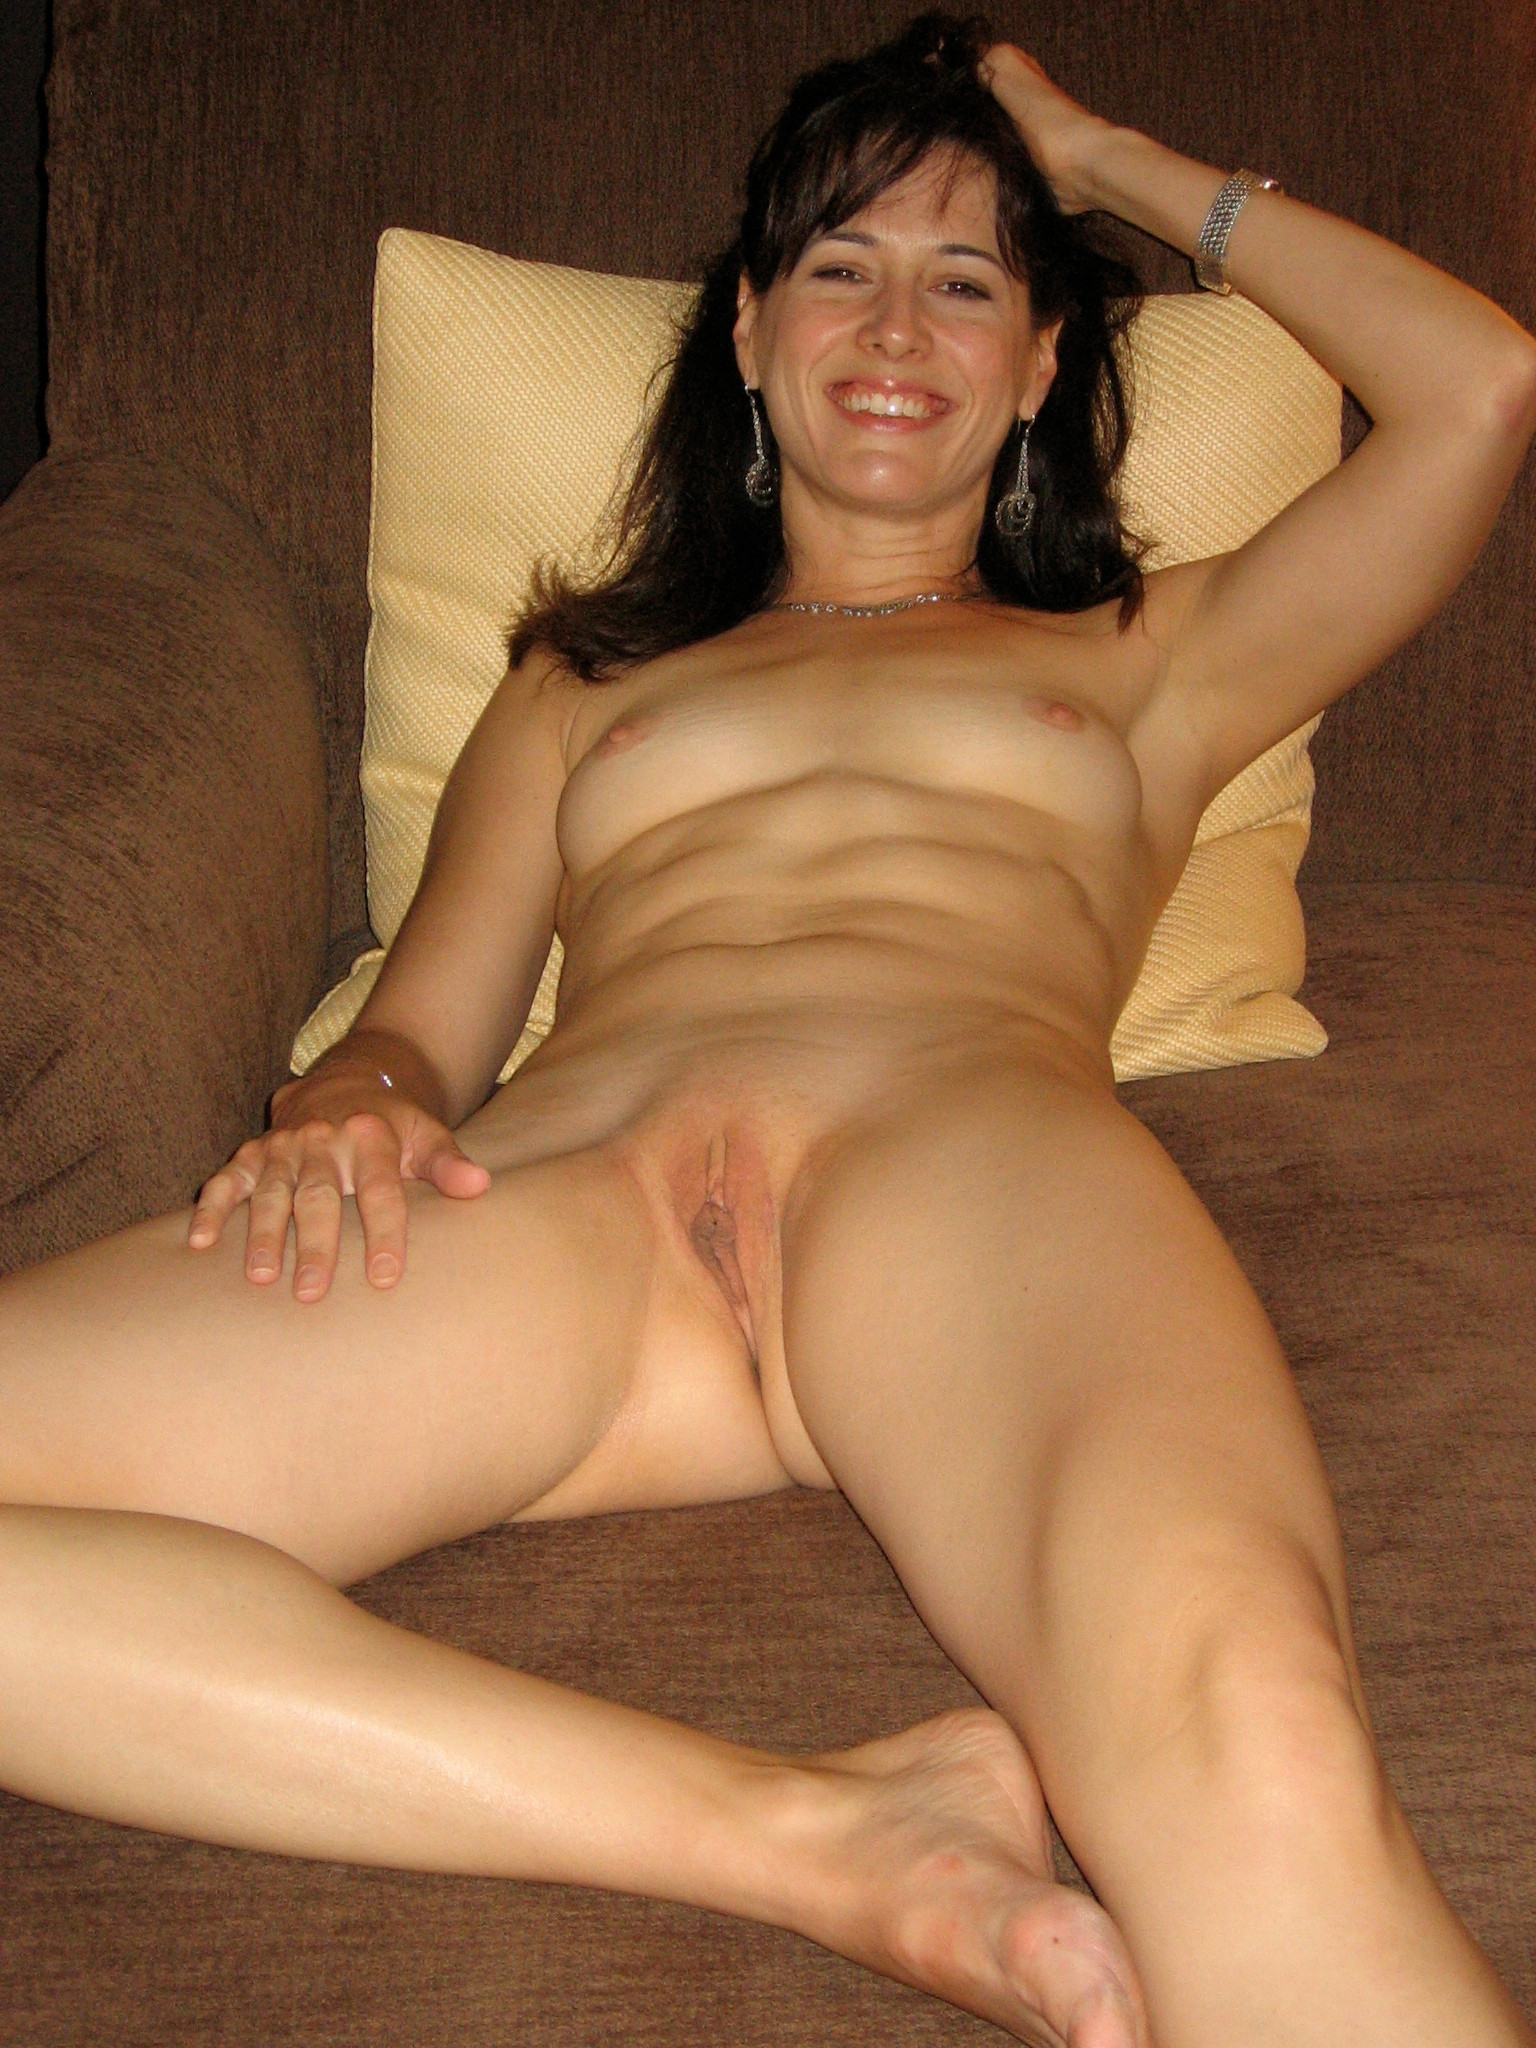 Mature legs spread on bed tied